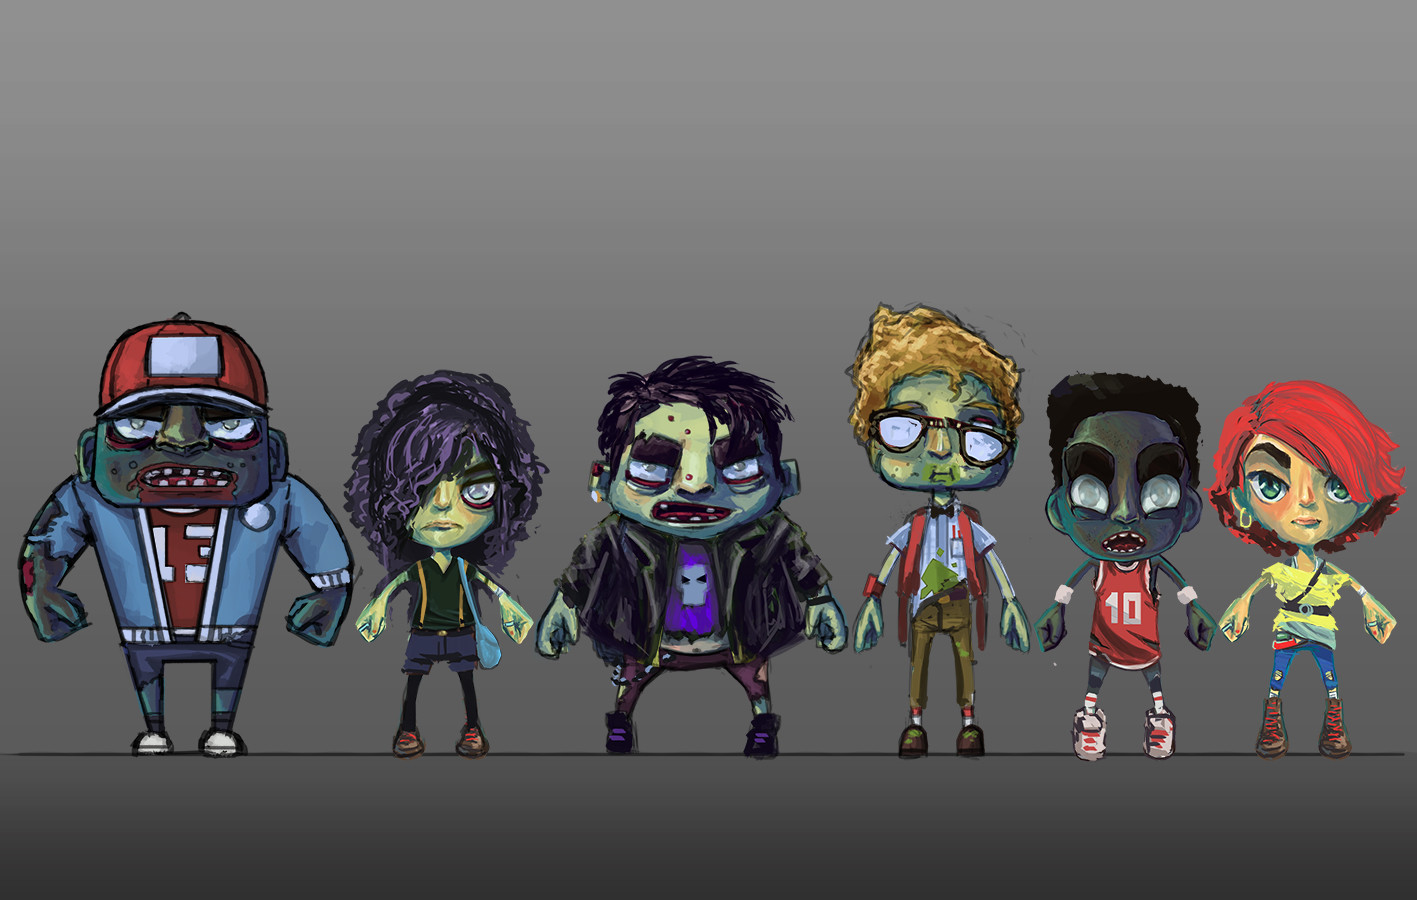 Character 80's style line up